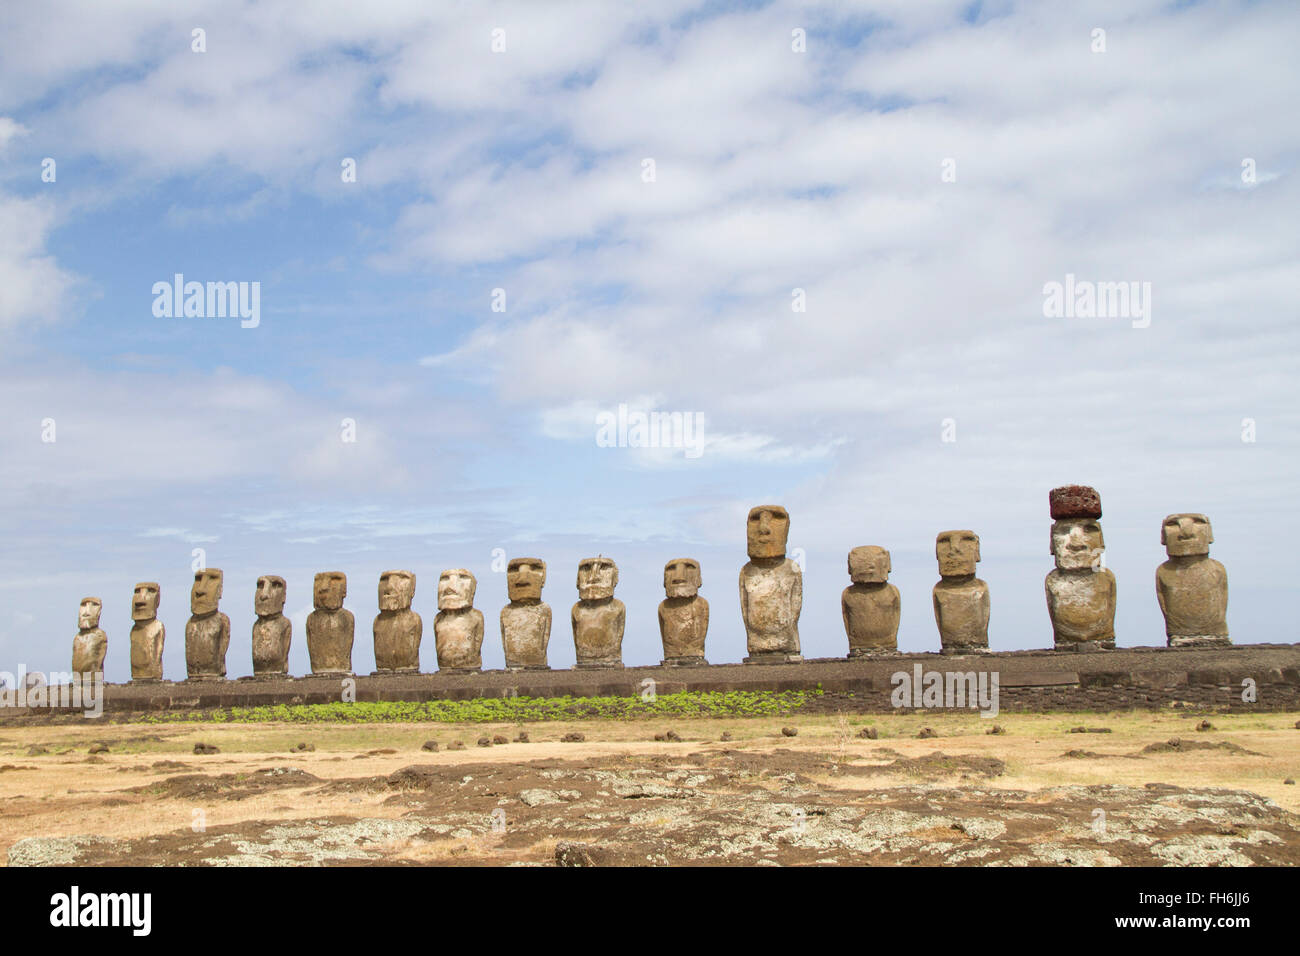 Fifteen moai (statues) on platform at Ahu Tongariki Easter Island, Chile - Stock Image